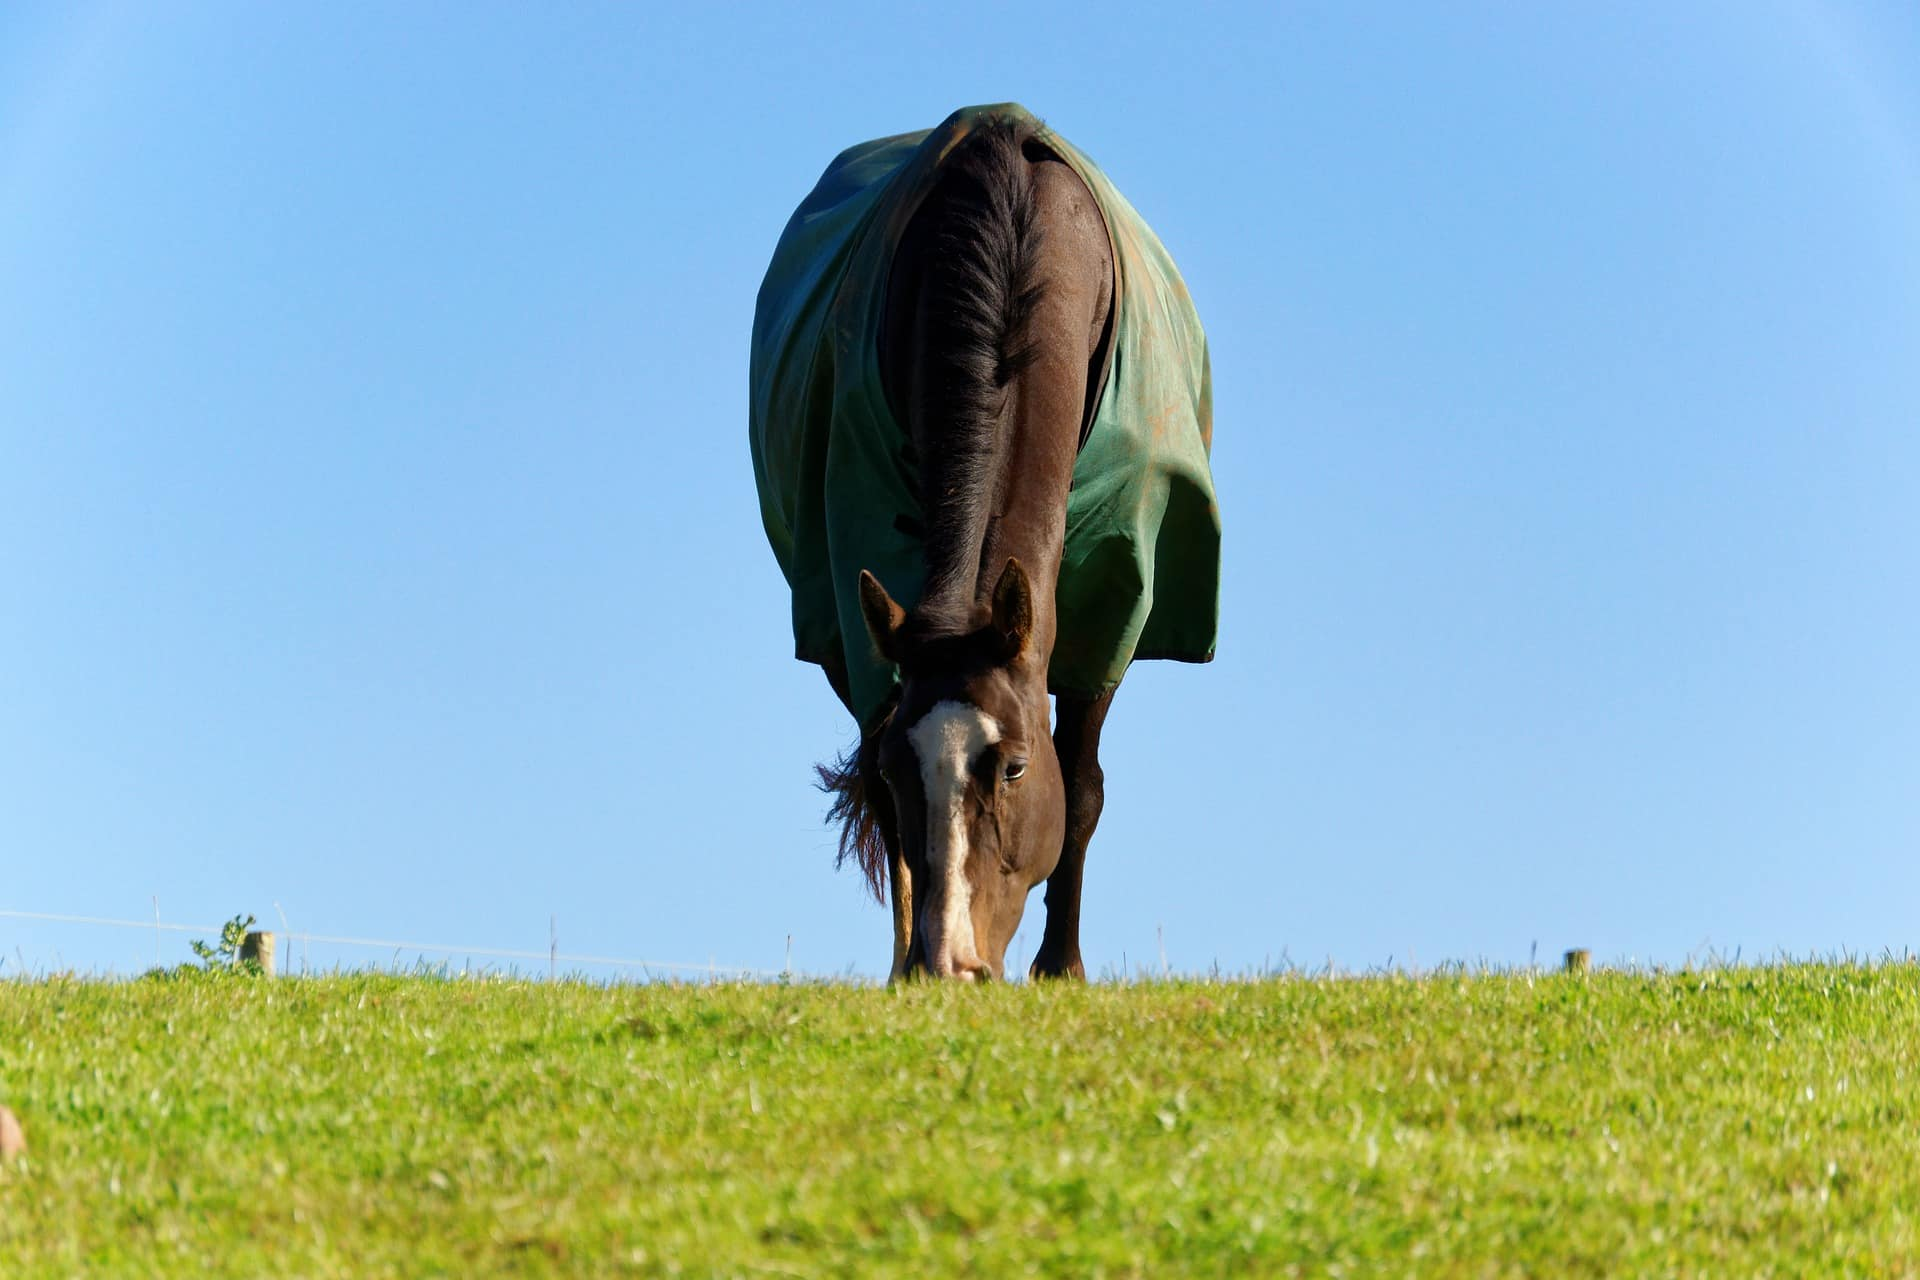 Check that your horse can graze